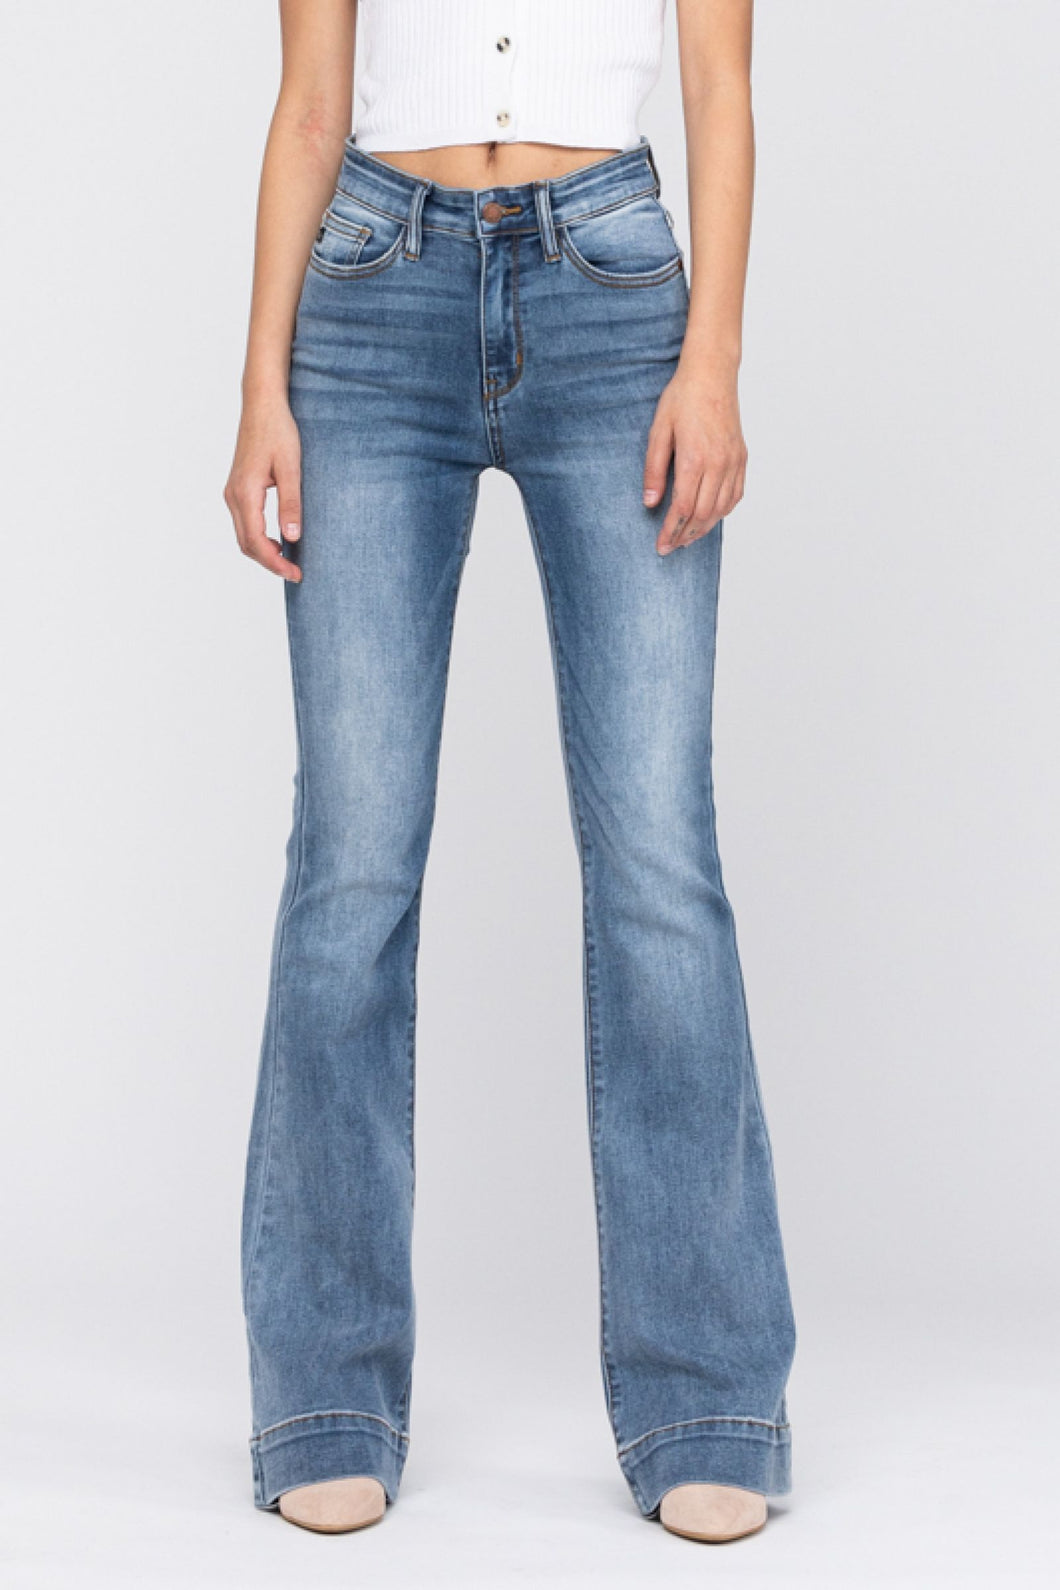 Judy Blue Mid-Rise Trouser Flare